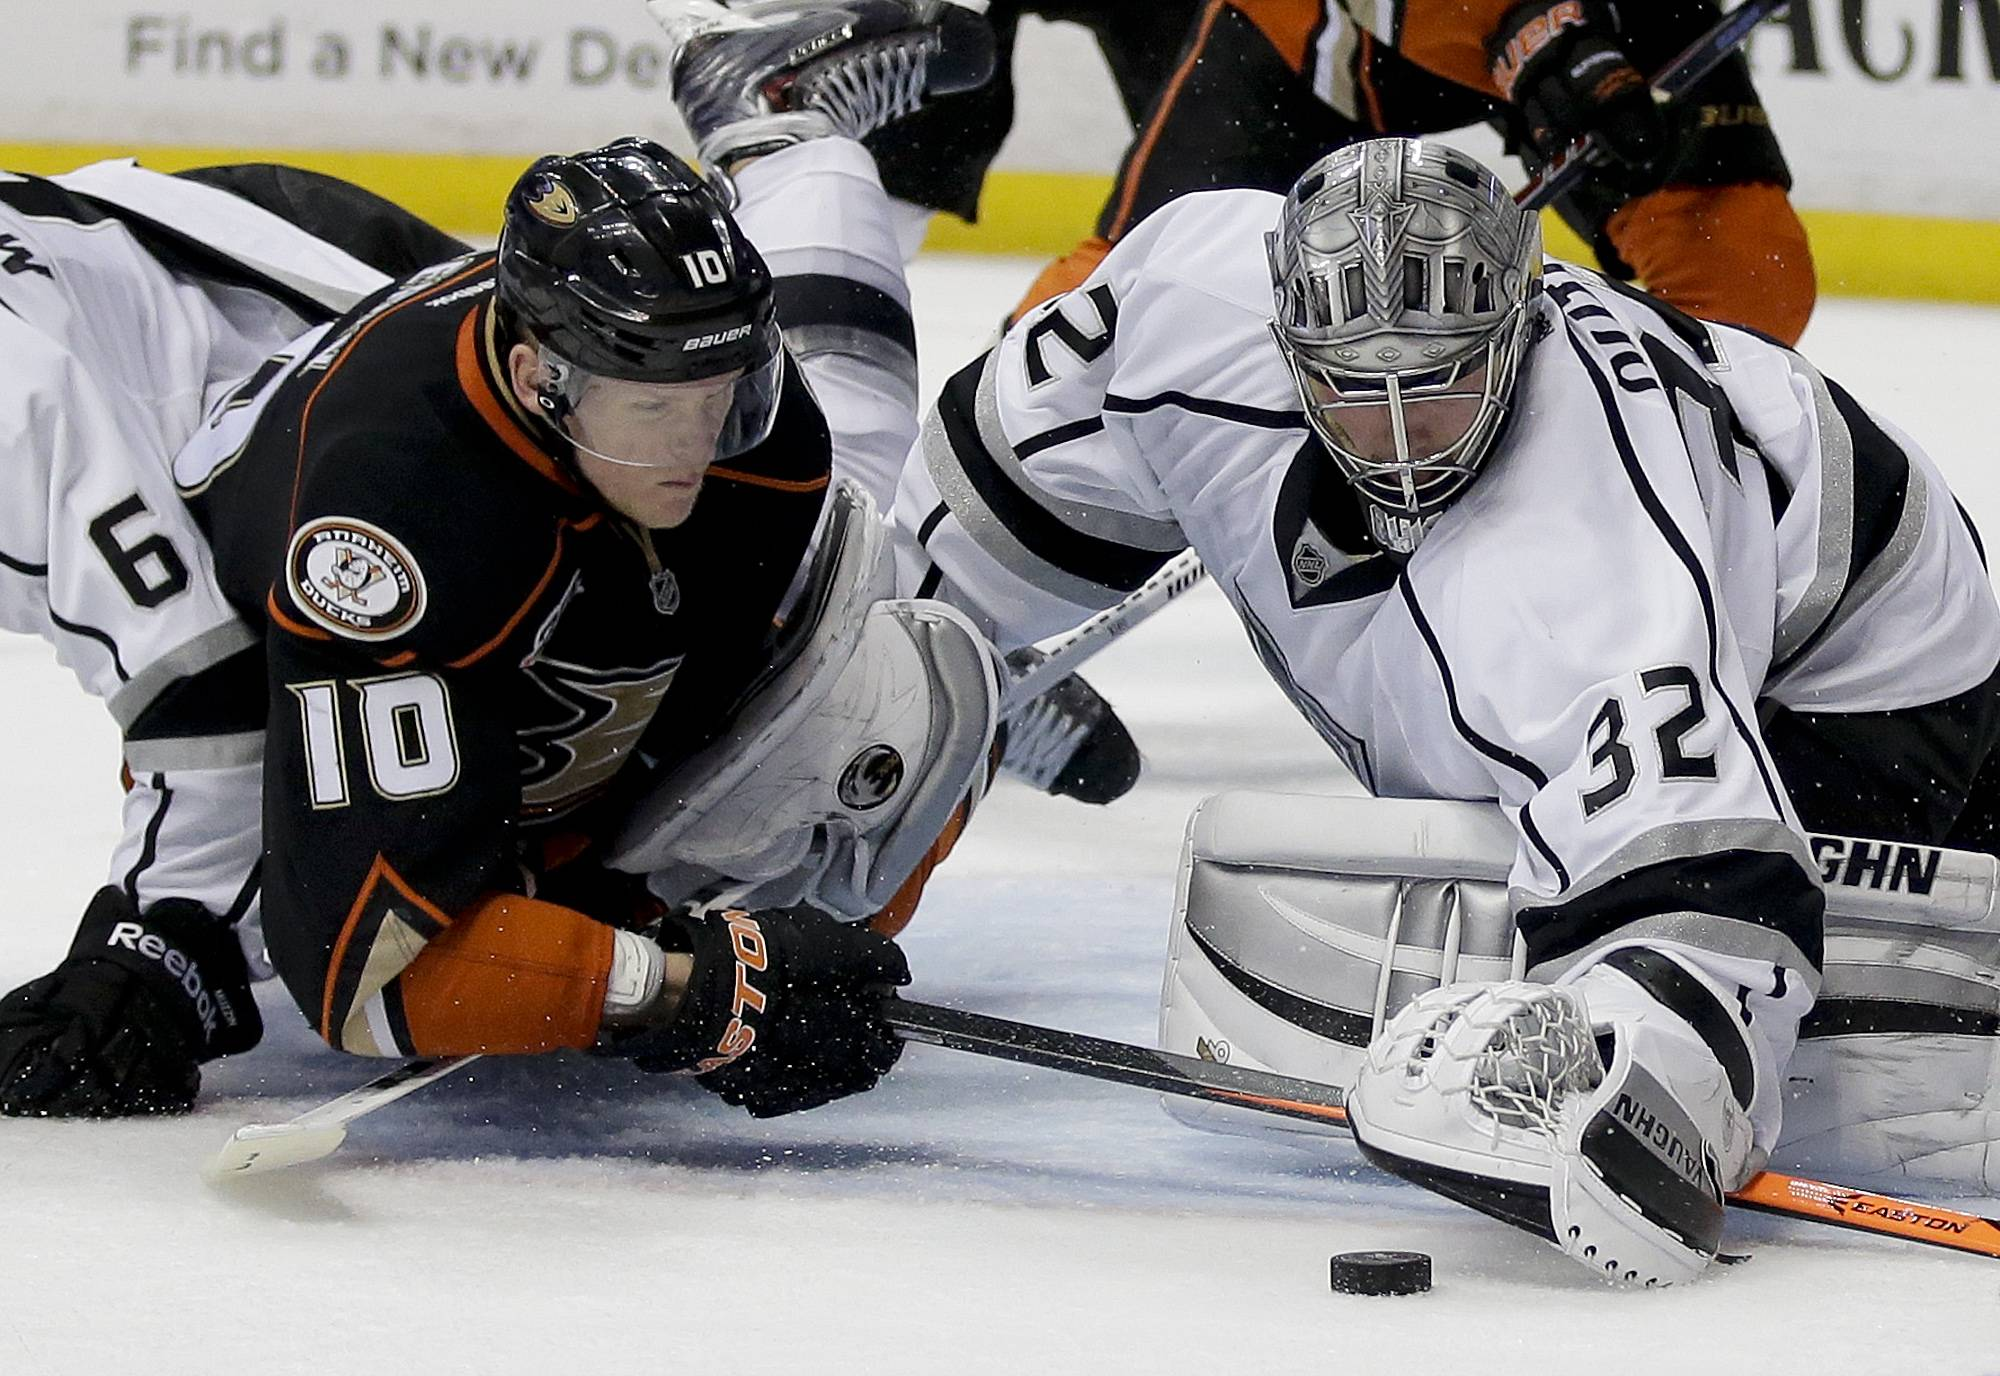 Los Angeles Kings goalie Jonathan Quick, right, blocks a shot by Anaheim Ducks right wing Corey Perry during the second period in Game 7 of an NHL hockey second-round Stanley Cup playoff series in Anaheim, Calif., Friday, May 16, 2014.